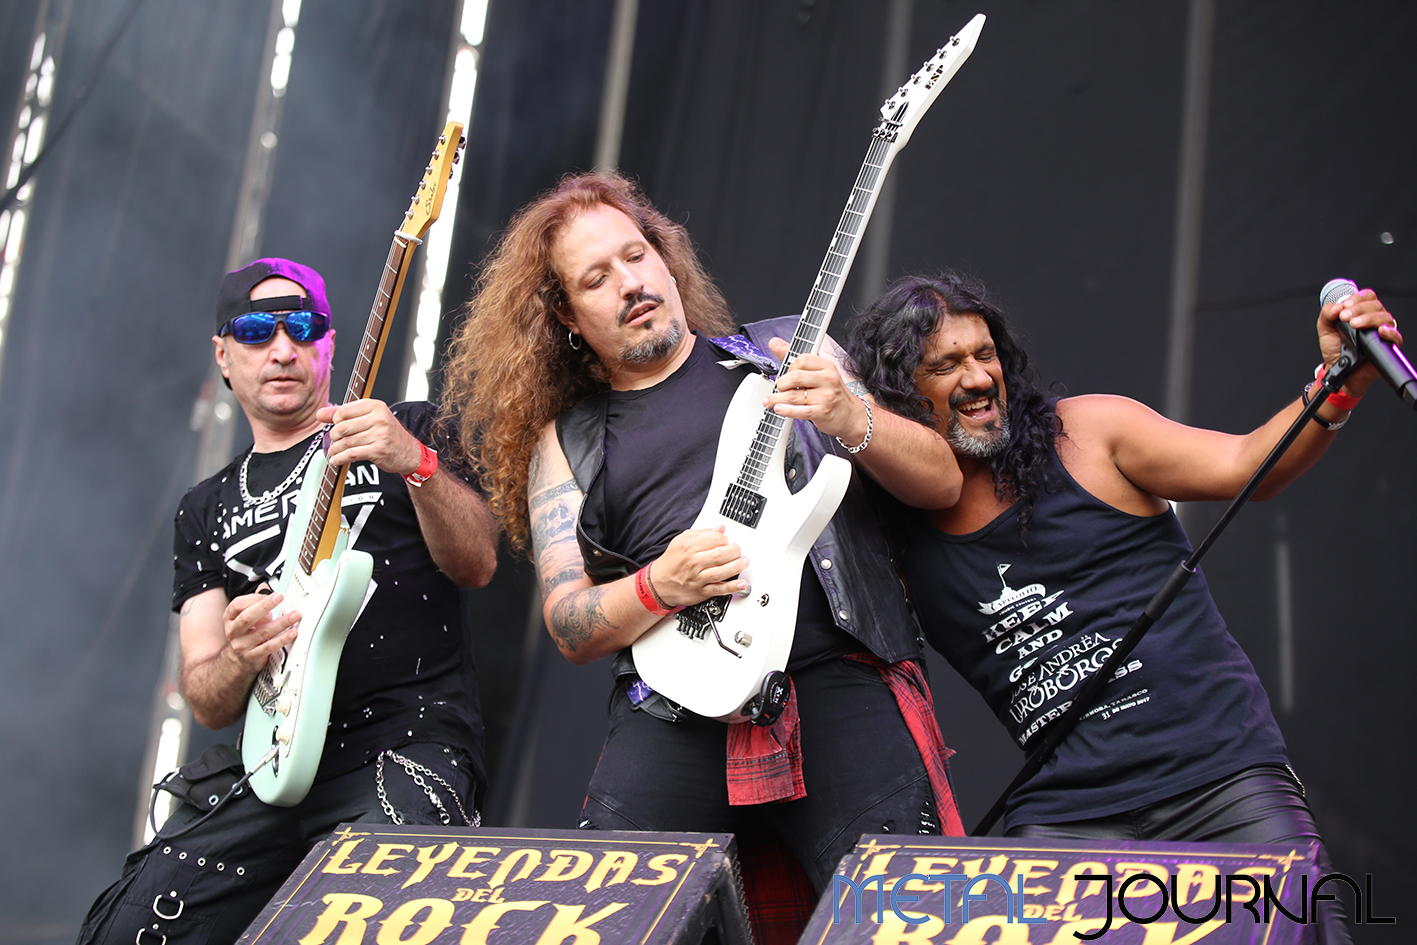 jose andrea uroboros - leyendas del rock 2019 metal journal pic 2